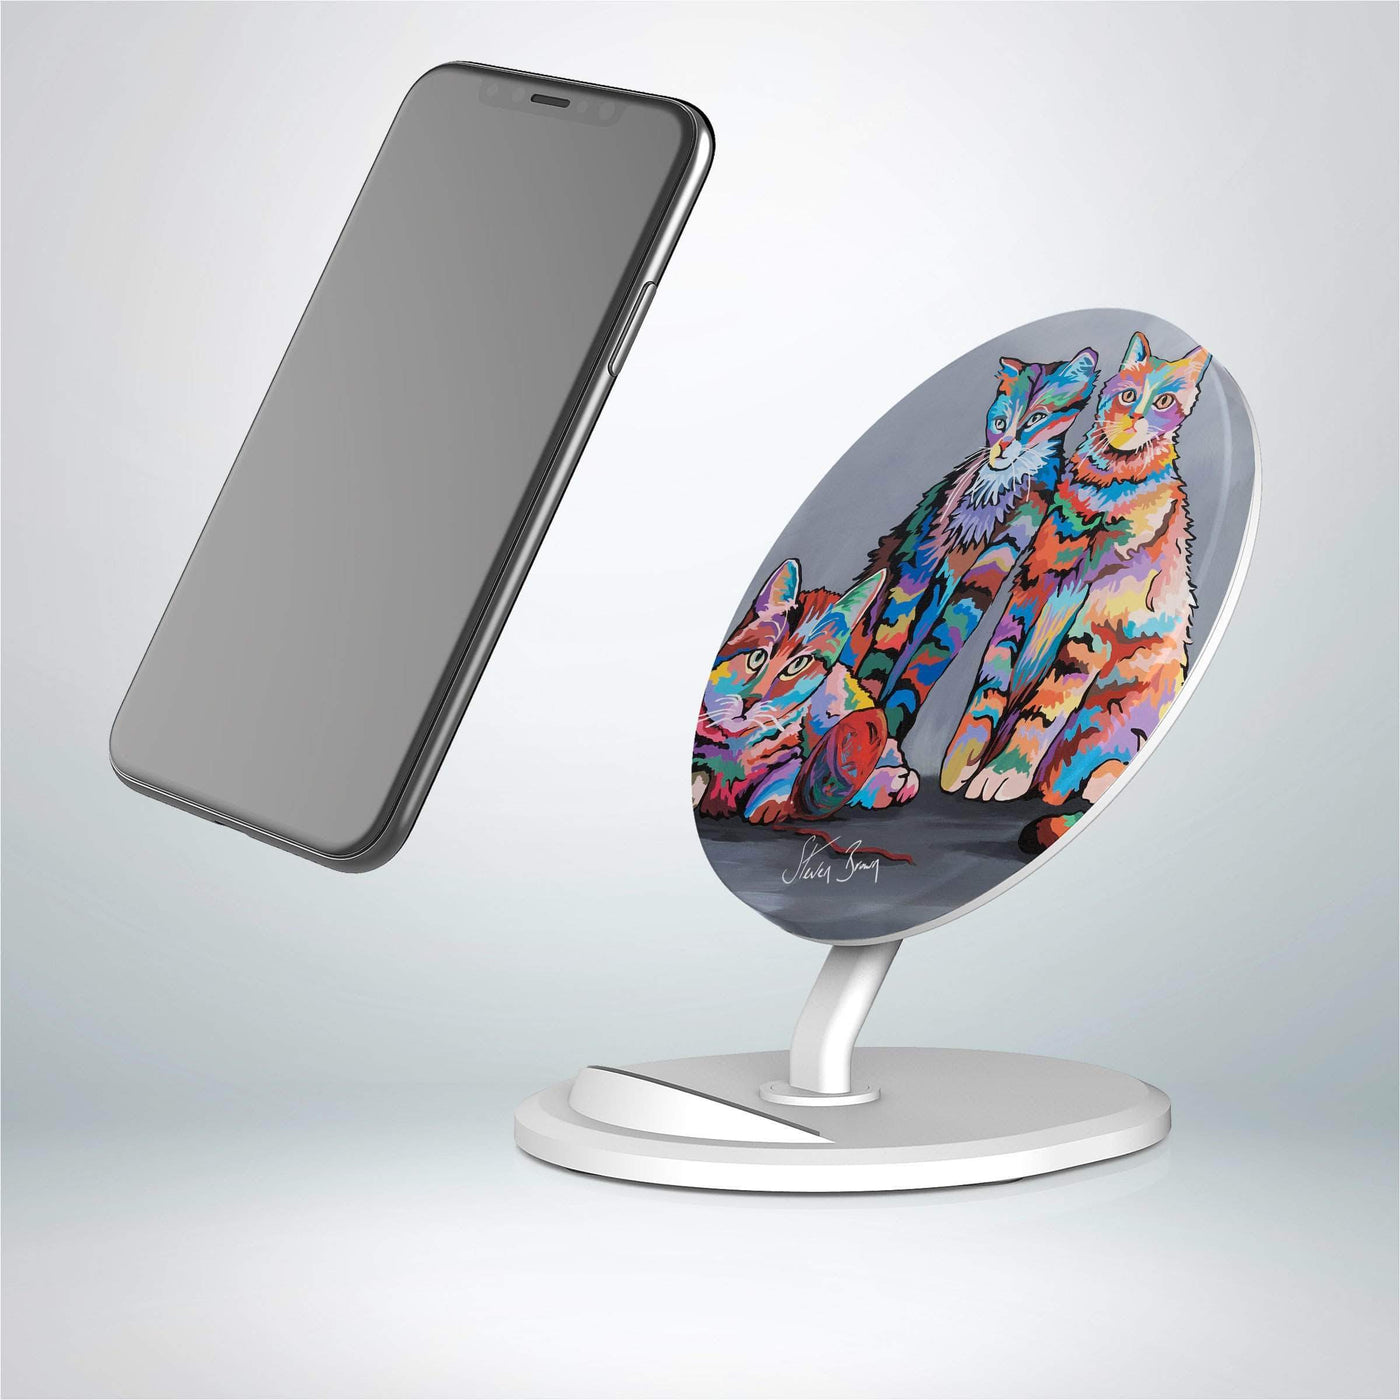 Smartphone Display with Chargers and Charging Cords Convience Store Countertop